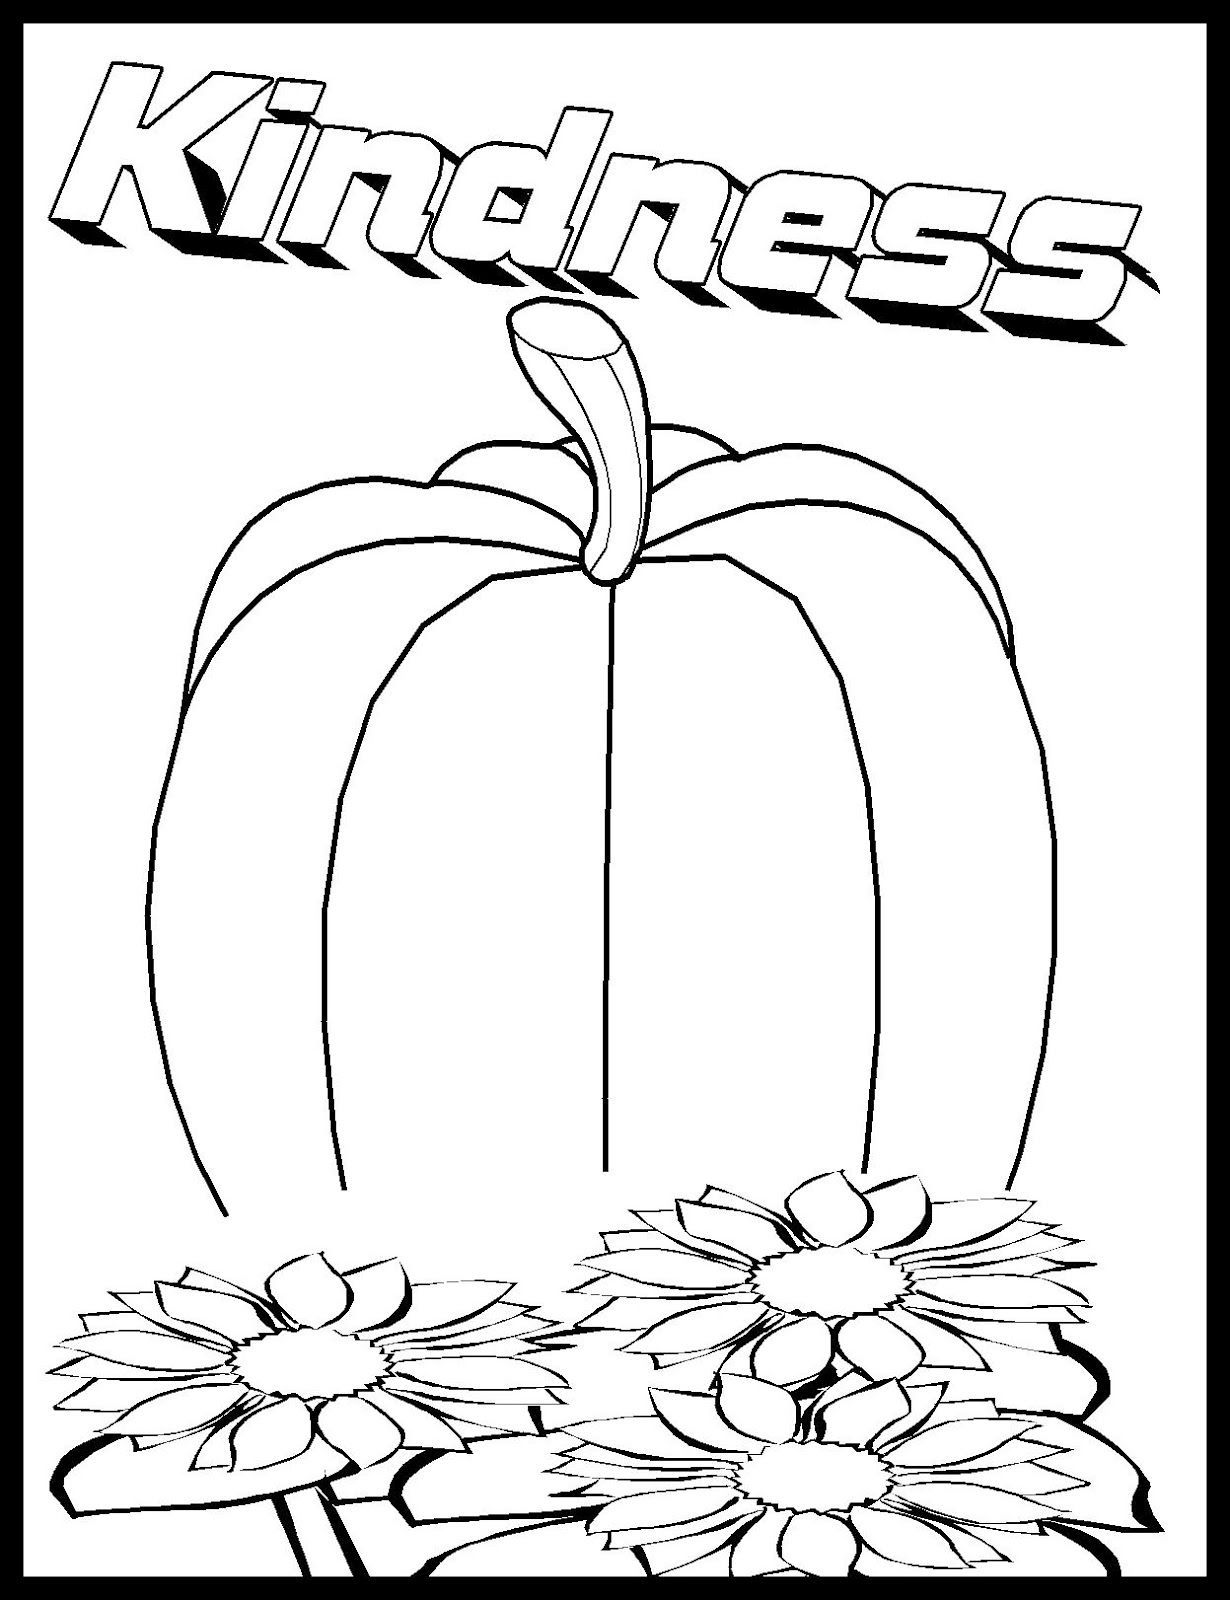 Showing Kindness Coloring Pages At Getcolorings